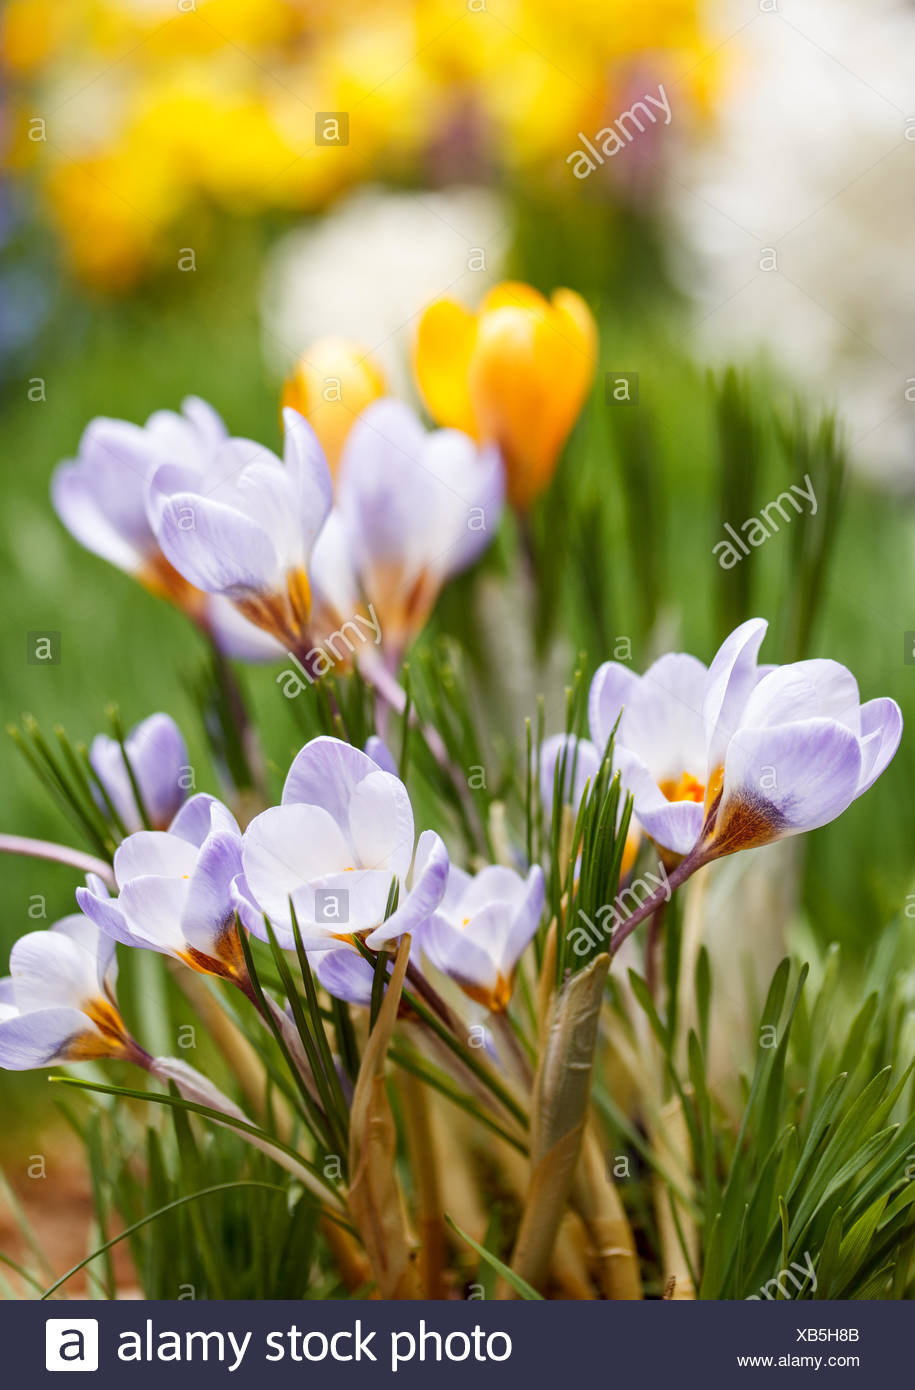 Crocus flowers - Stock Image